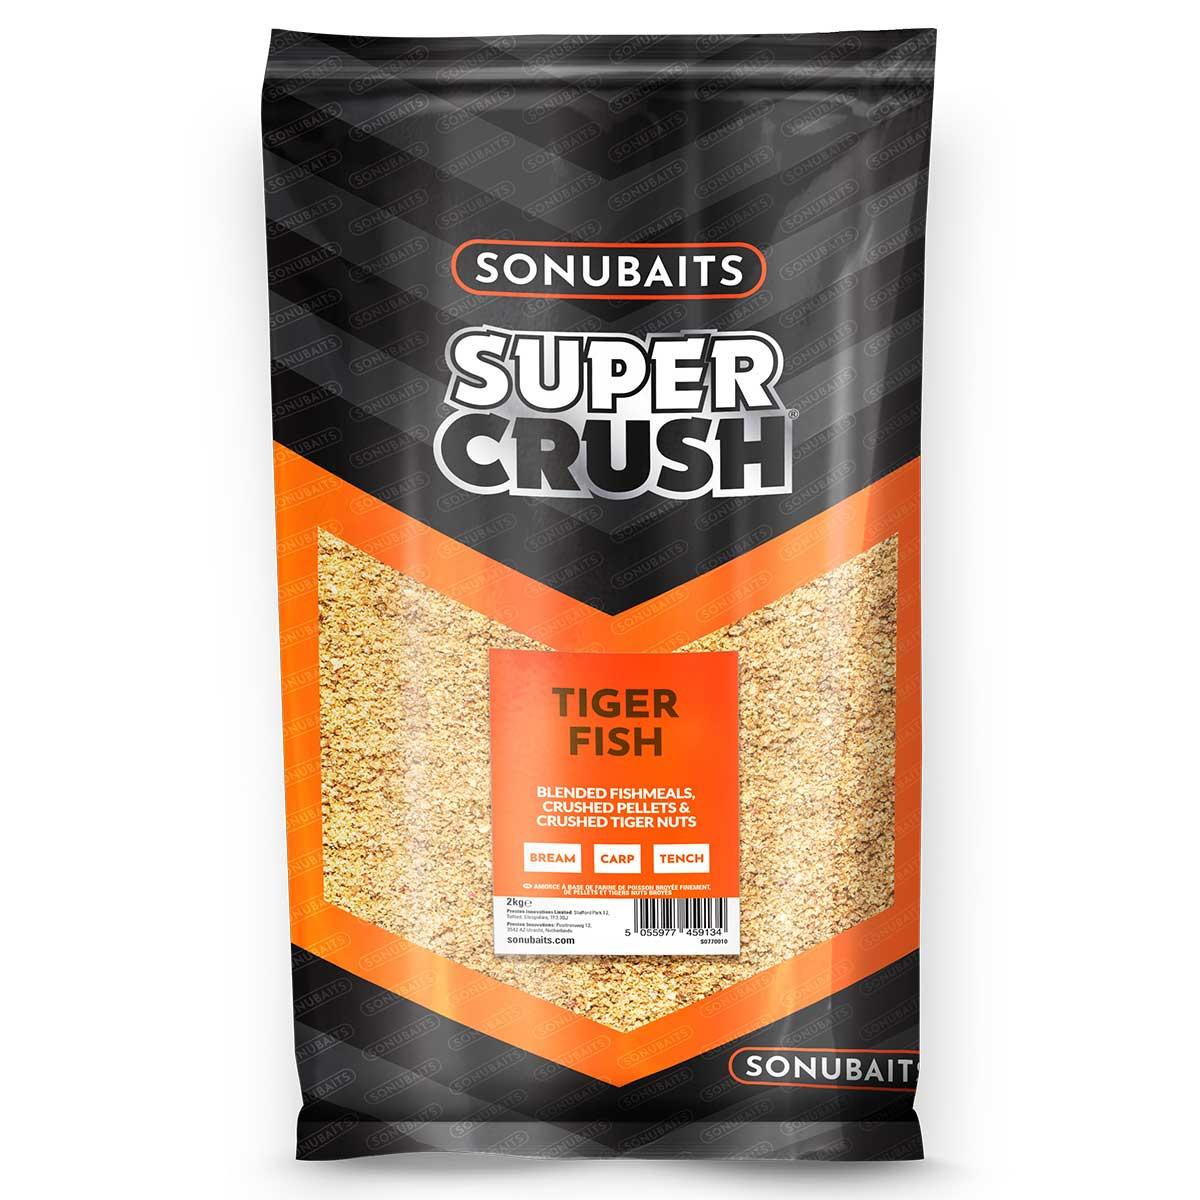 Sonubaits Super Crush Tiger Fish